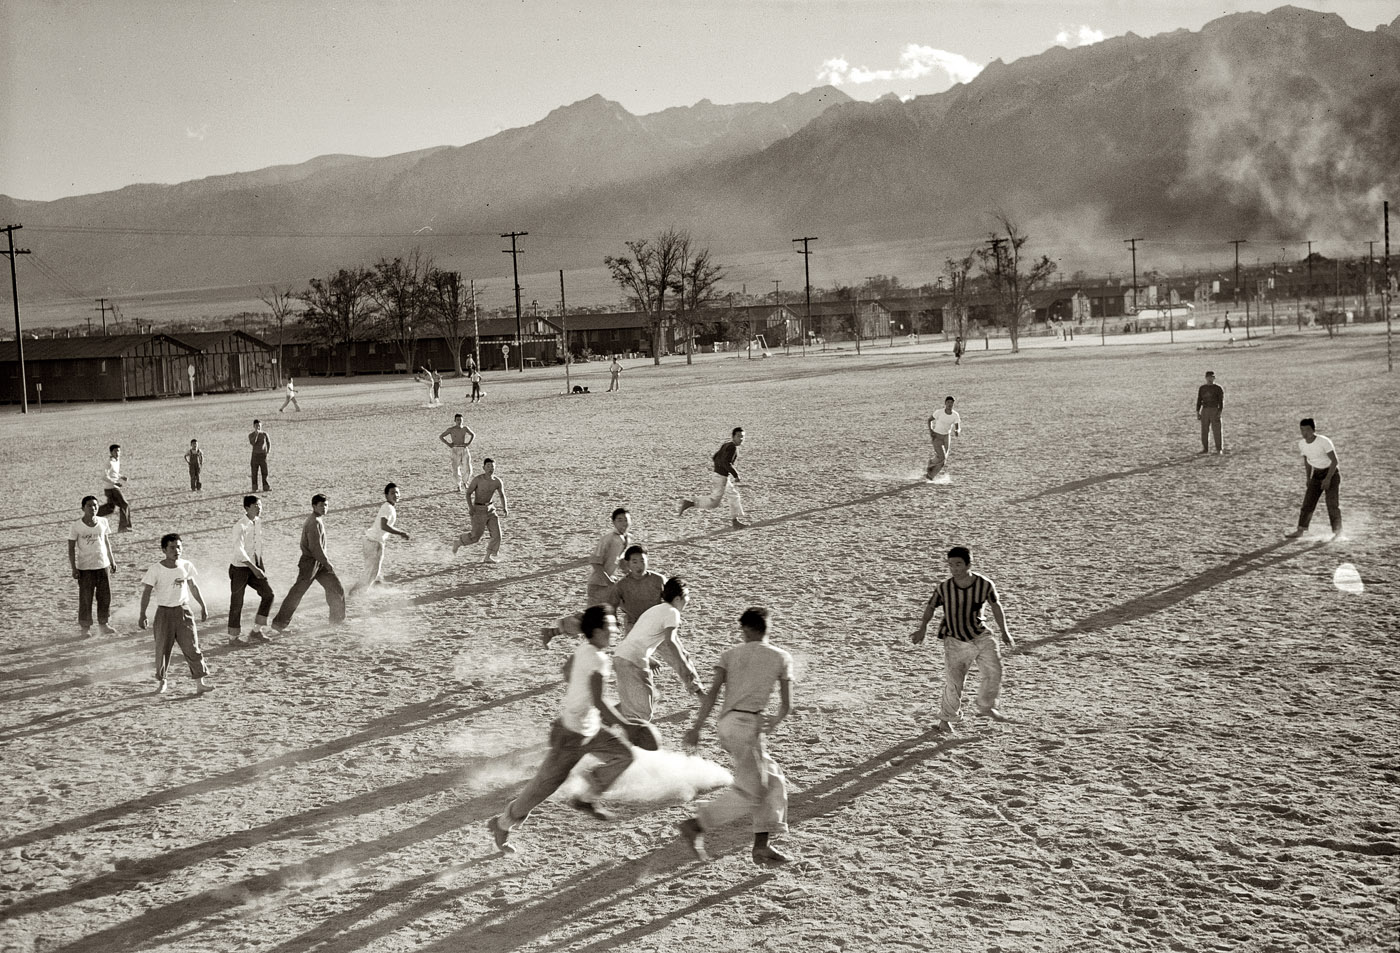 1943. Japanese-American internees at the Manzanar War Relocation Center in California.  Players involved in a football game on a dusty field, buildings and mountains in the distance.